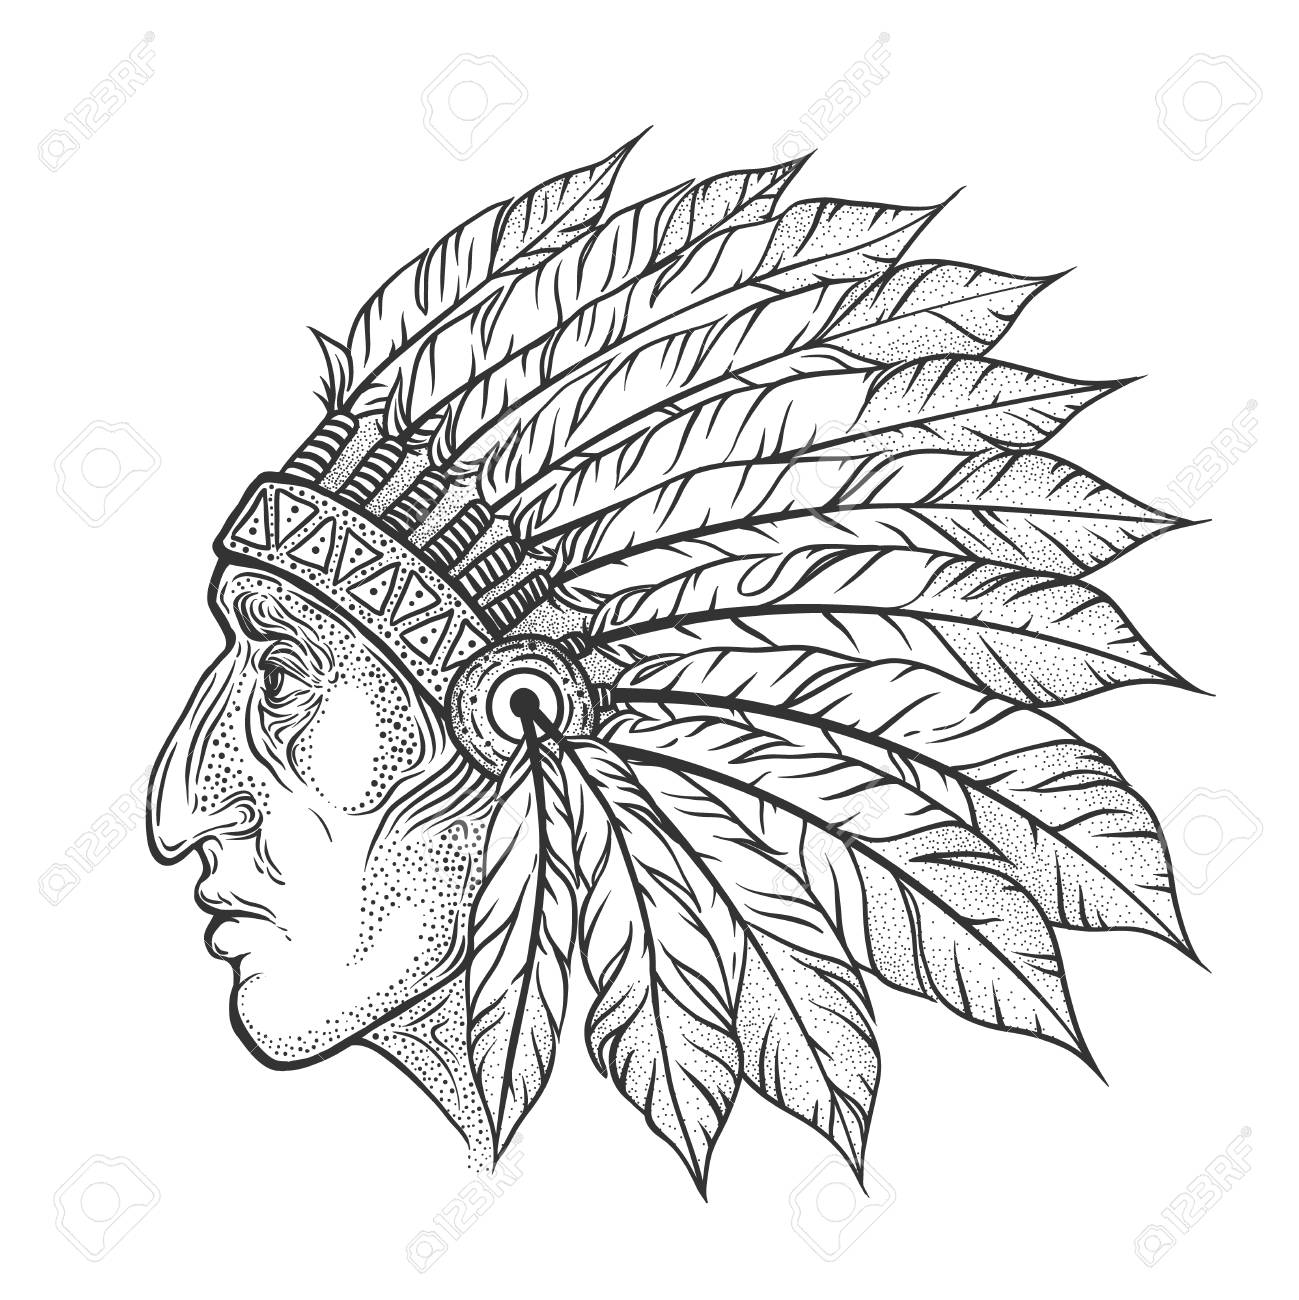 a61494e8ba560 Native American Indian chief head profile. Vector vintage illustration.  Hand drawn style. Blackwork